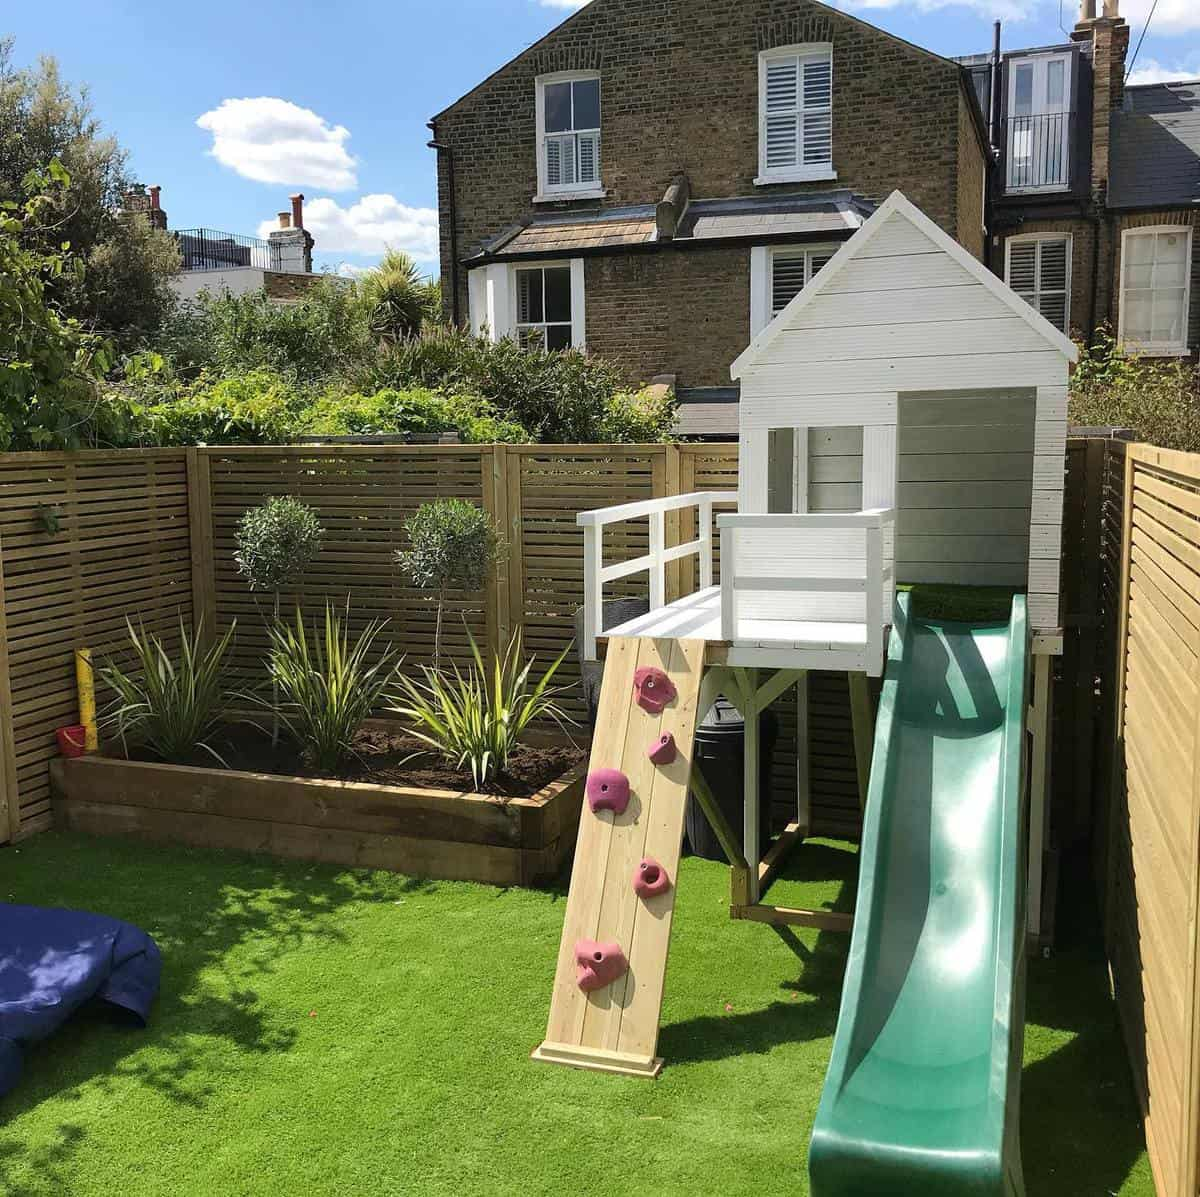 Artificial Turf Grass Free Yard Ideas -culverlandscaping